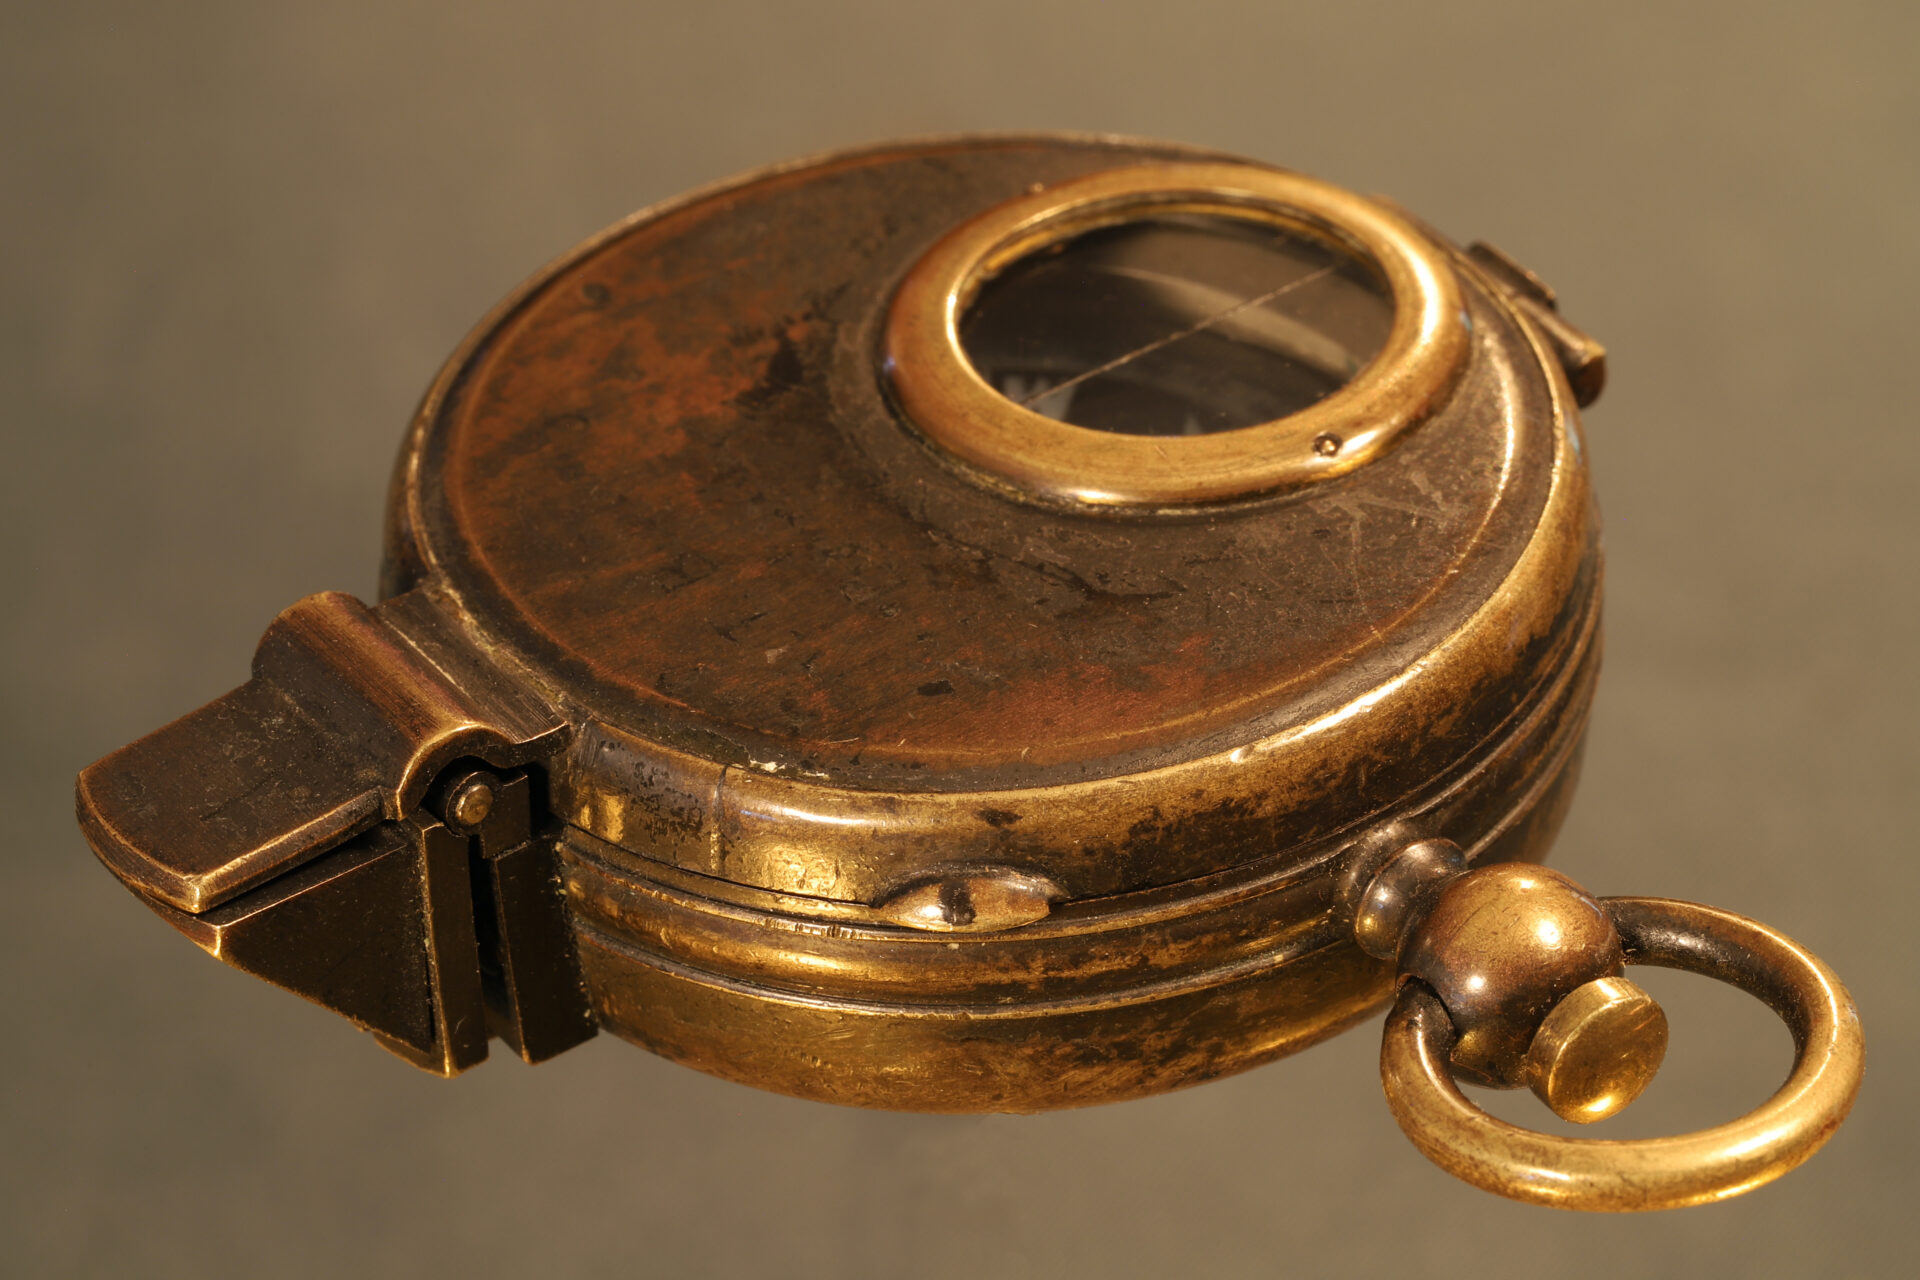 Image of closed Negretti & Zambra Prismatic Compass c1895 taken from righthand side